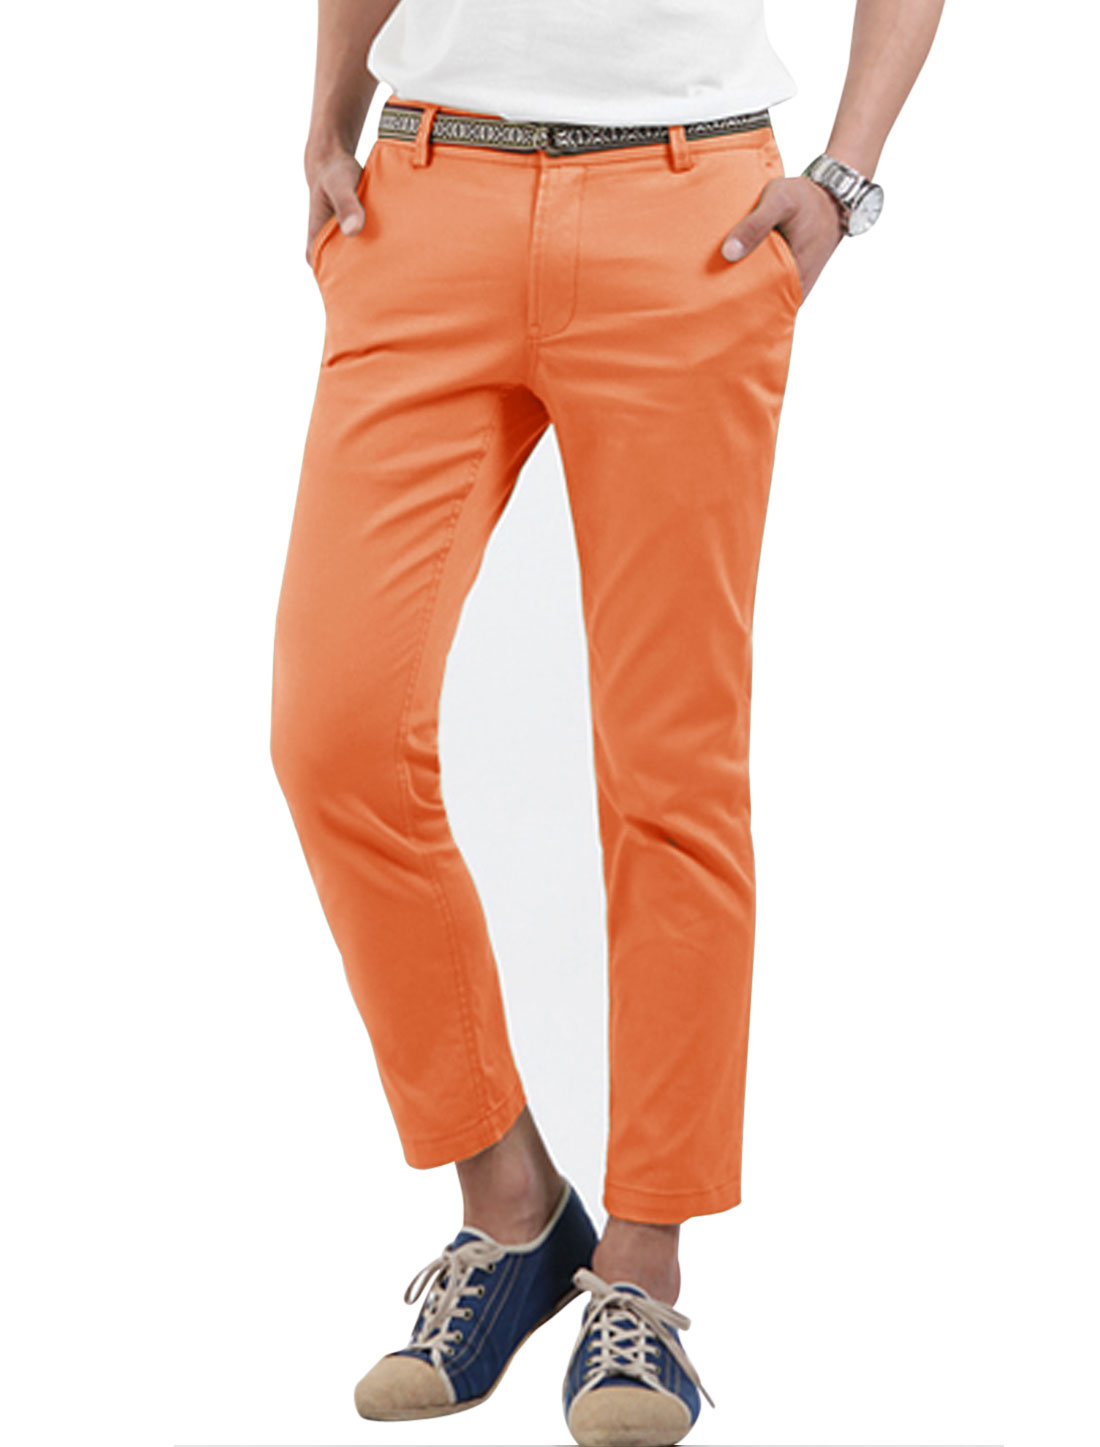 Men Cuffed Pockets Stripes Line Inner Cropped Pants Light Orange W30